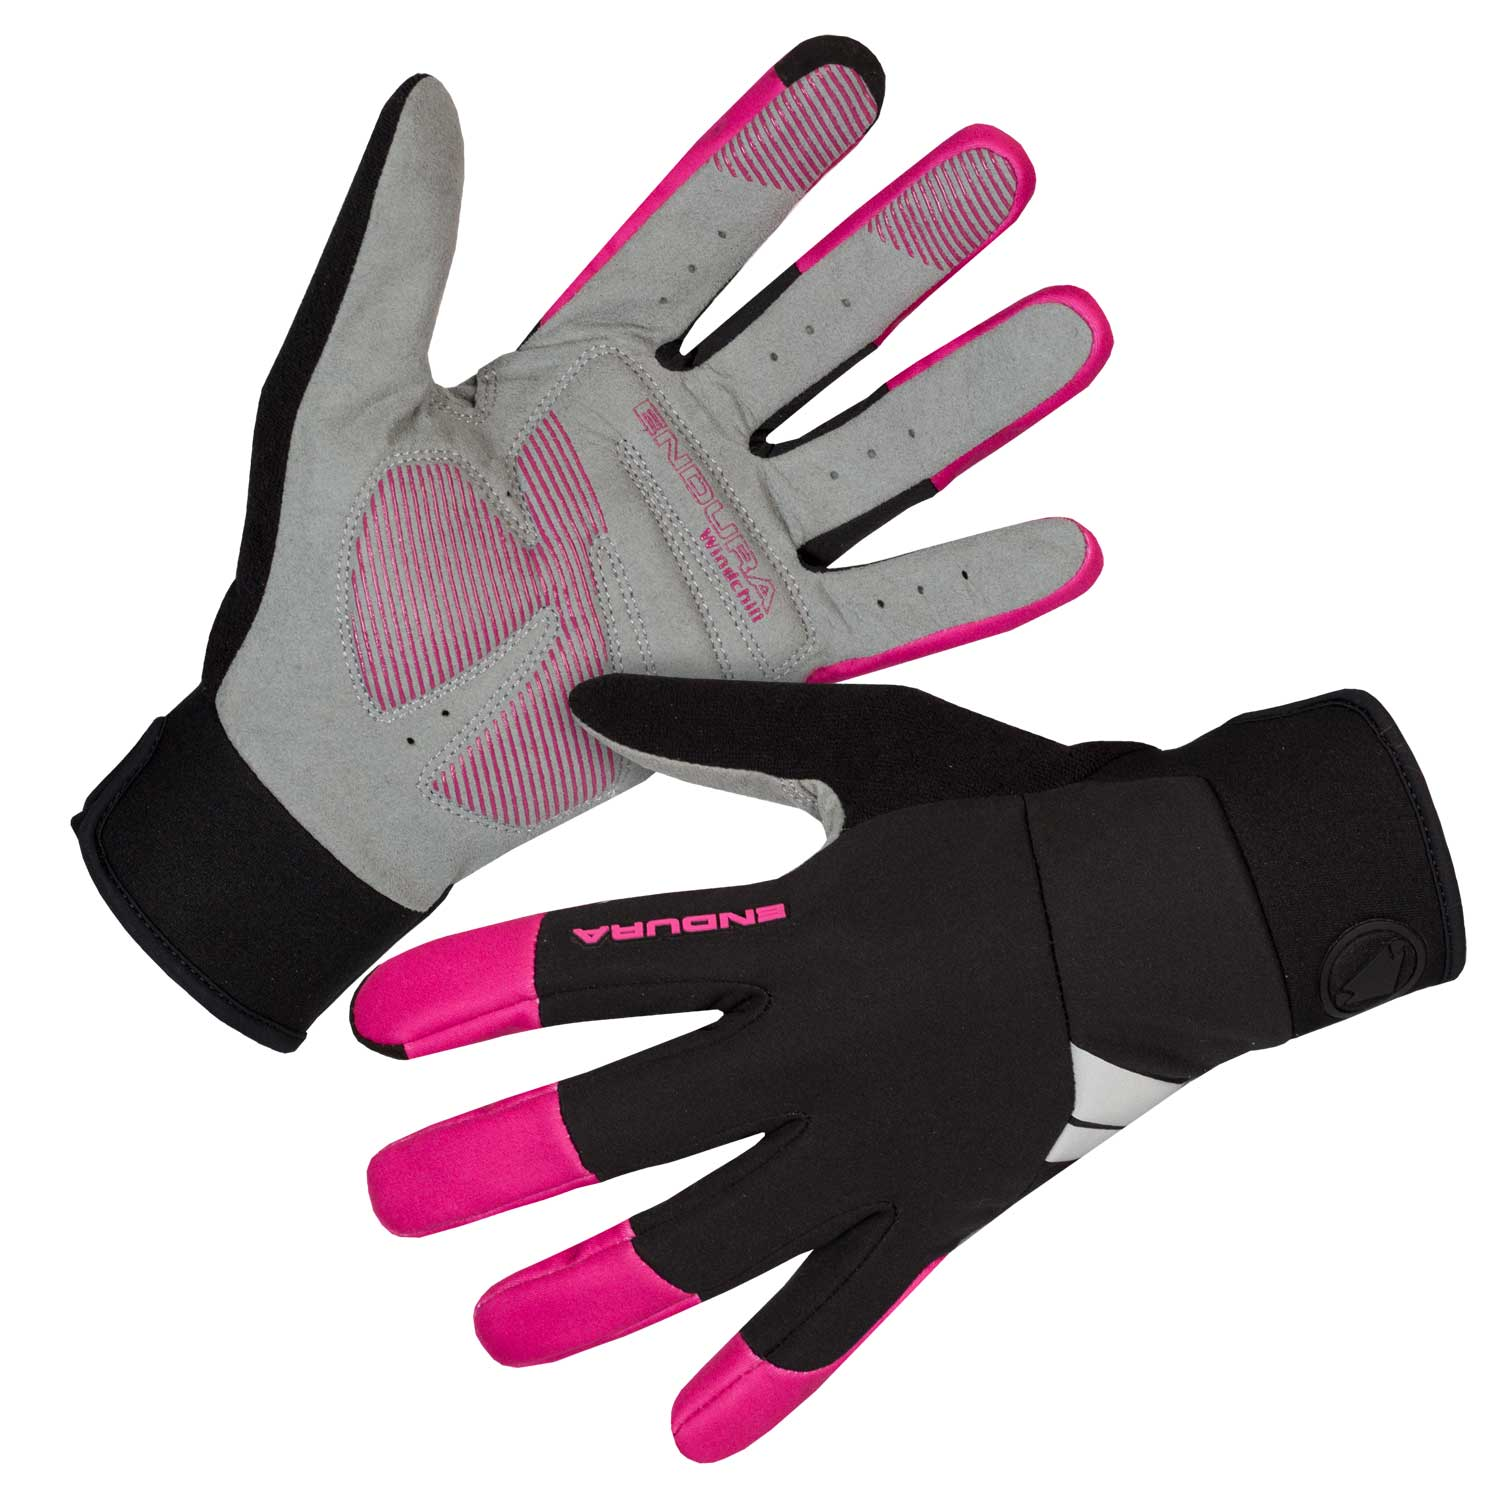 Finish Line Mechanic Grip Gloves S/m Black